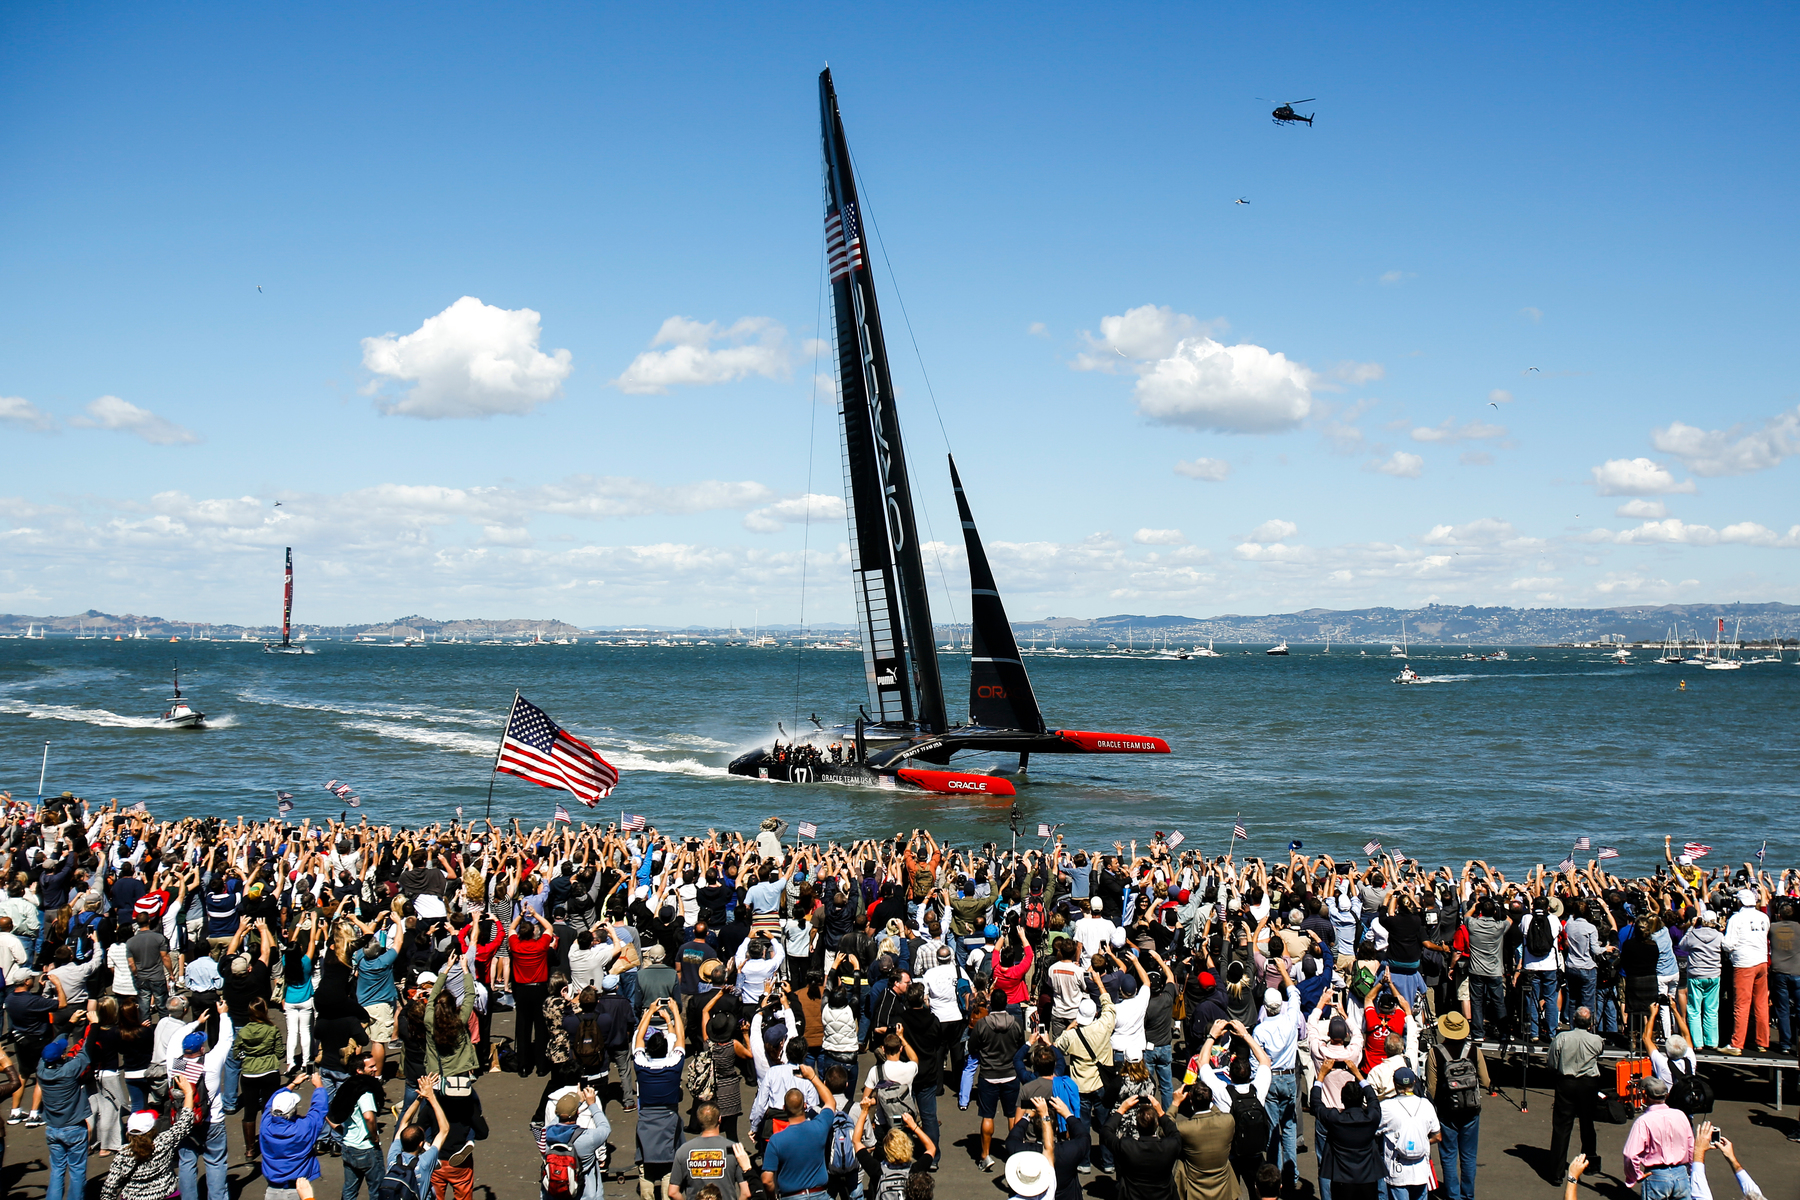 Oracle Team USA crosses the finish line after winning Race 19 and the overall title of the 34th America's Cup yacht sailing race over Emirates Team New Zealand in San Francisco, California September 25, 2013.